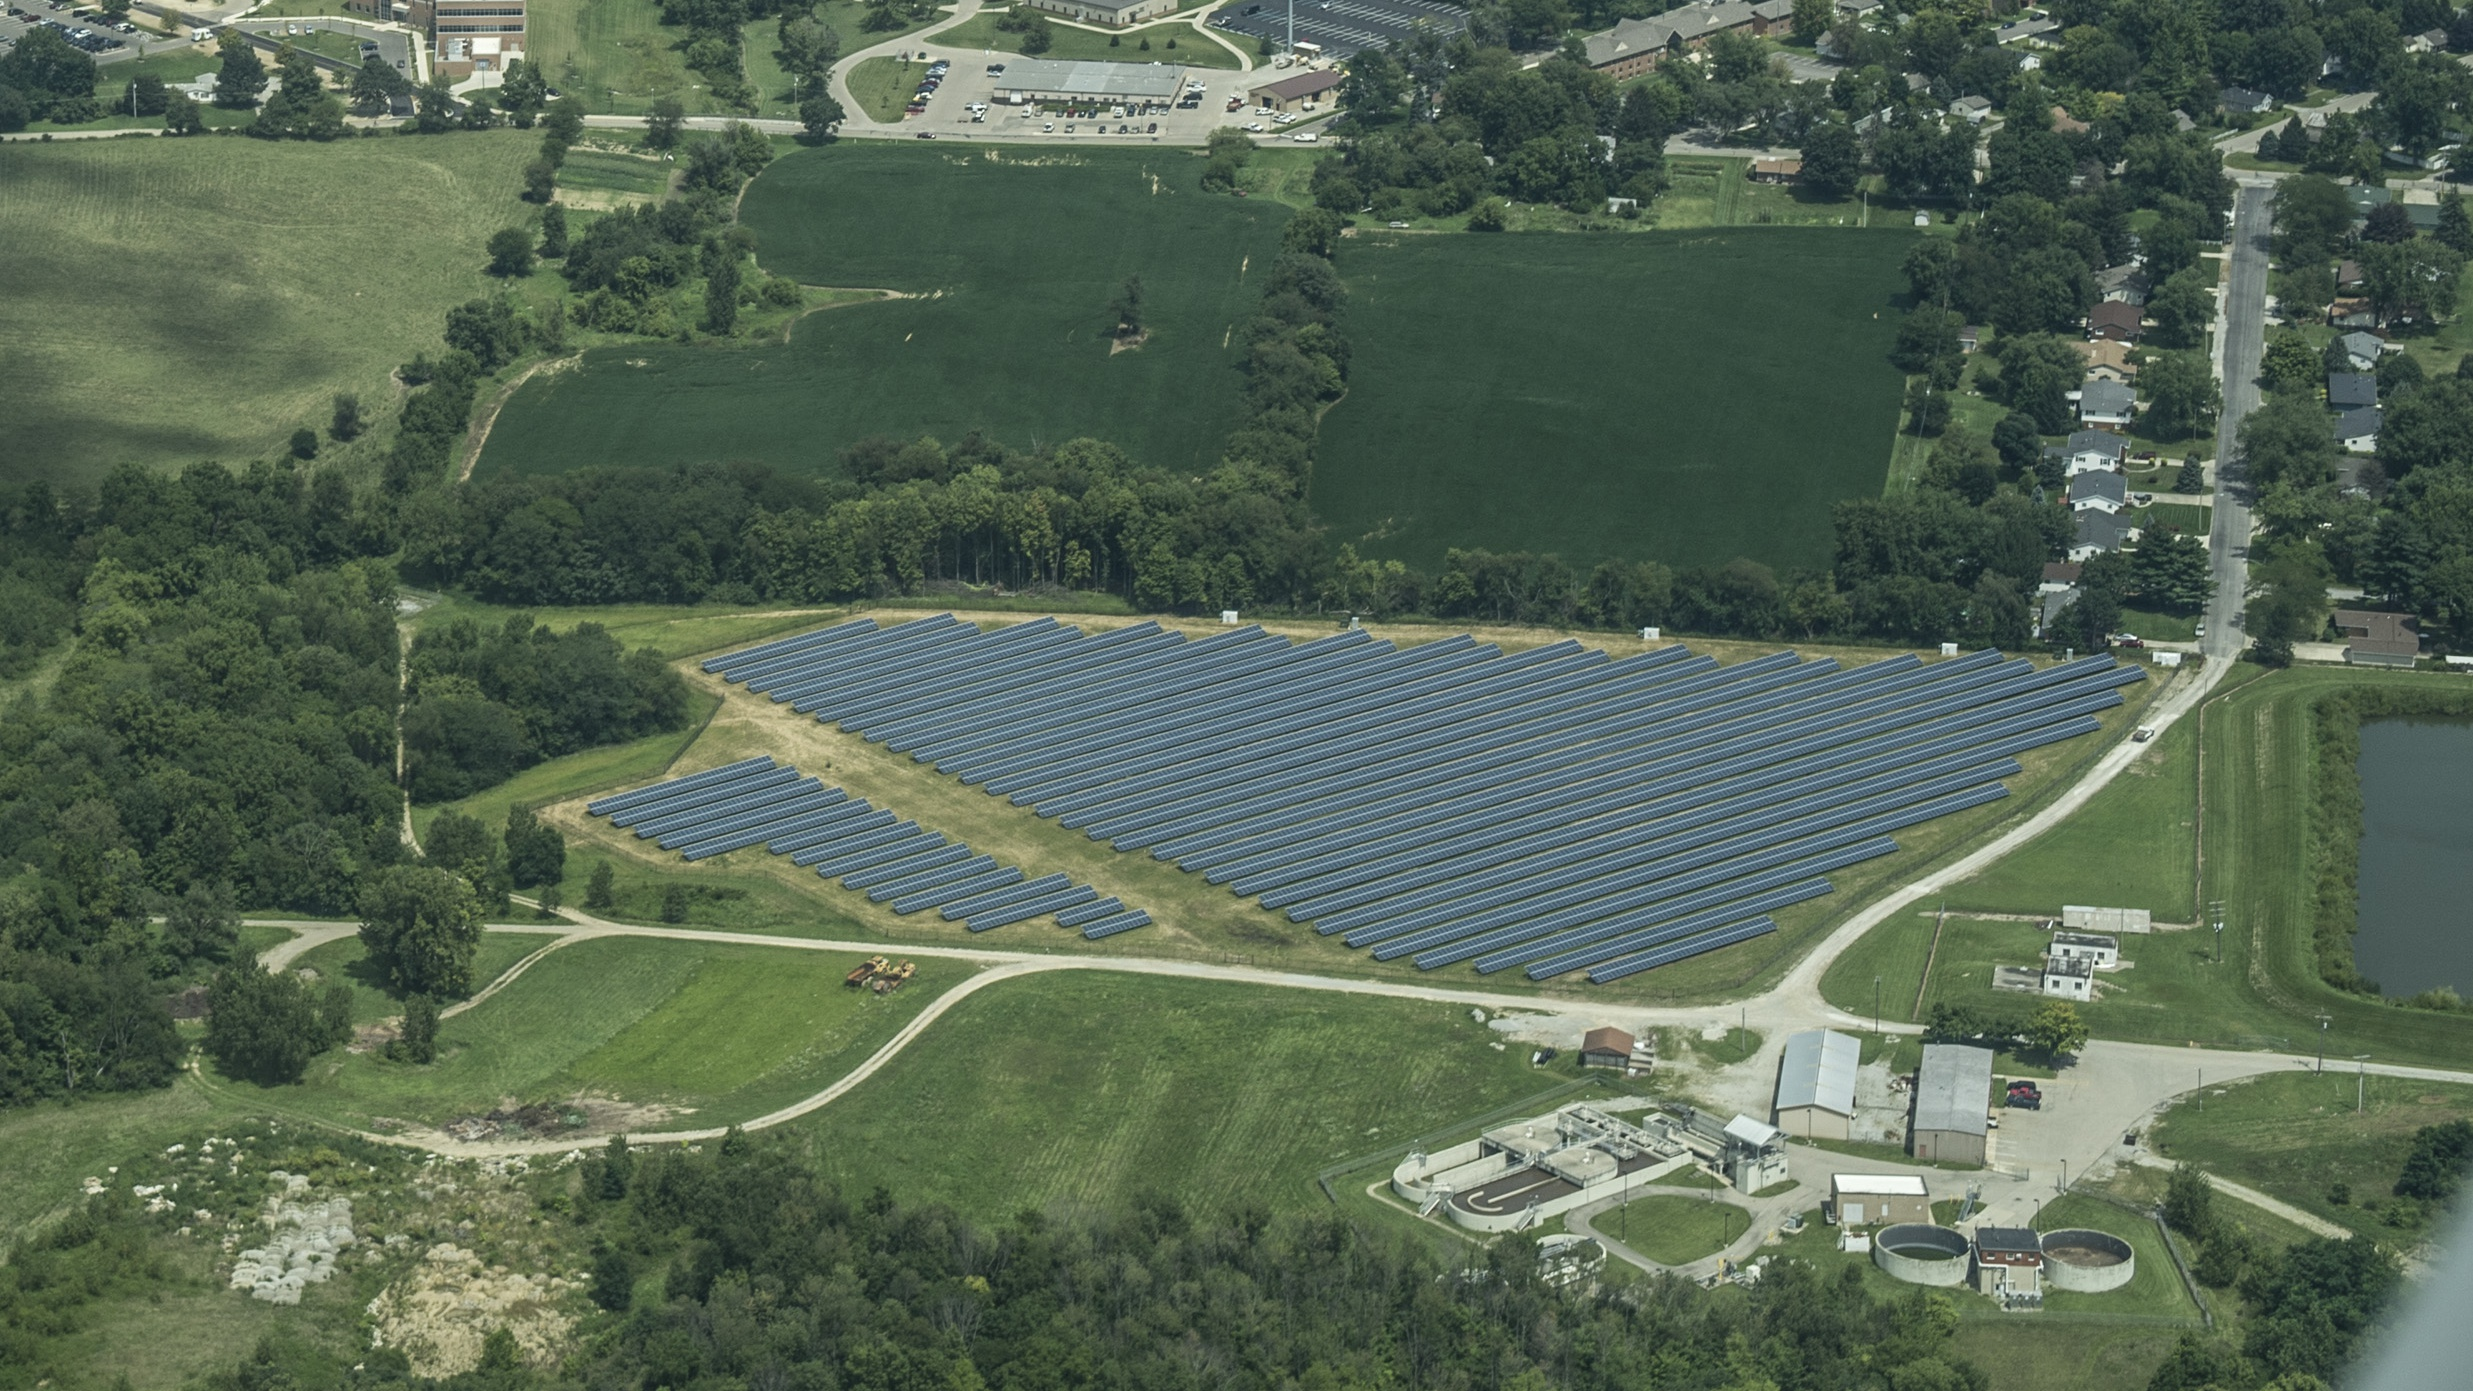 Cedarville University Announces Large Solar Power Installation